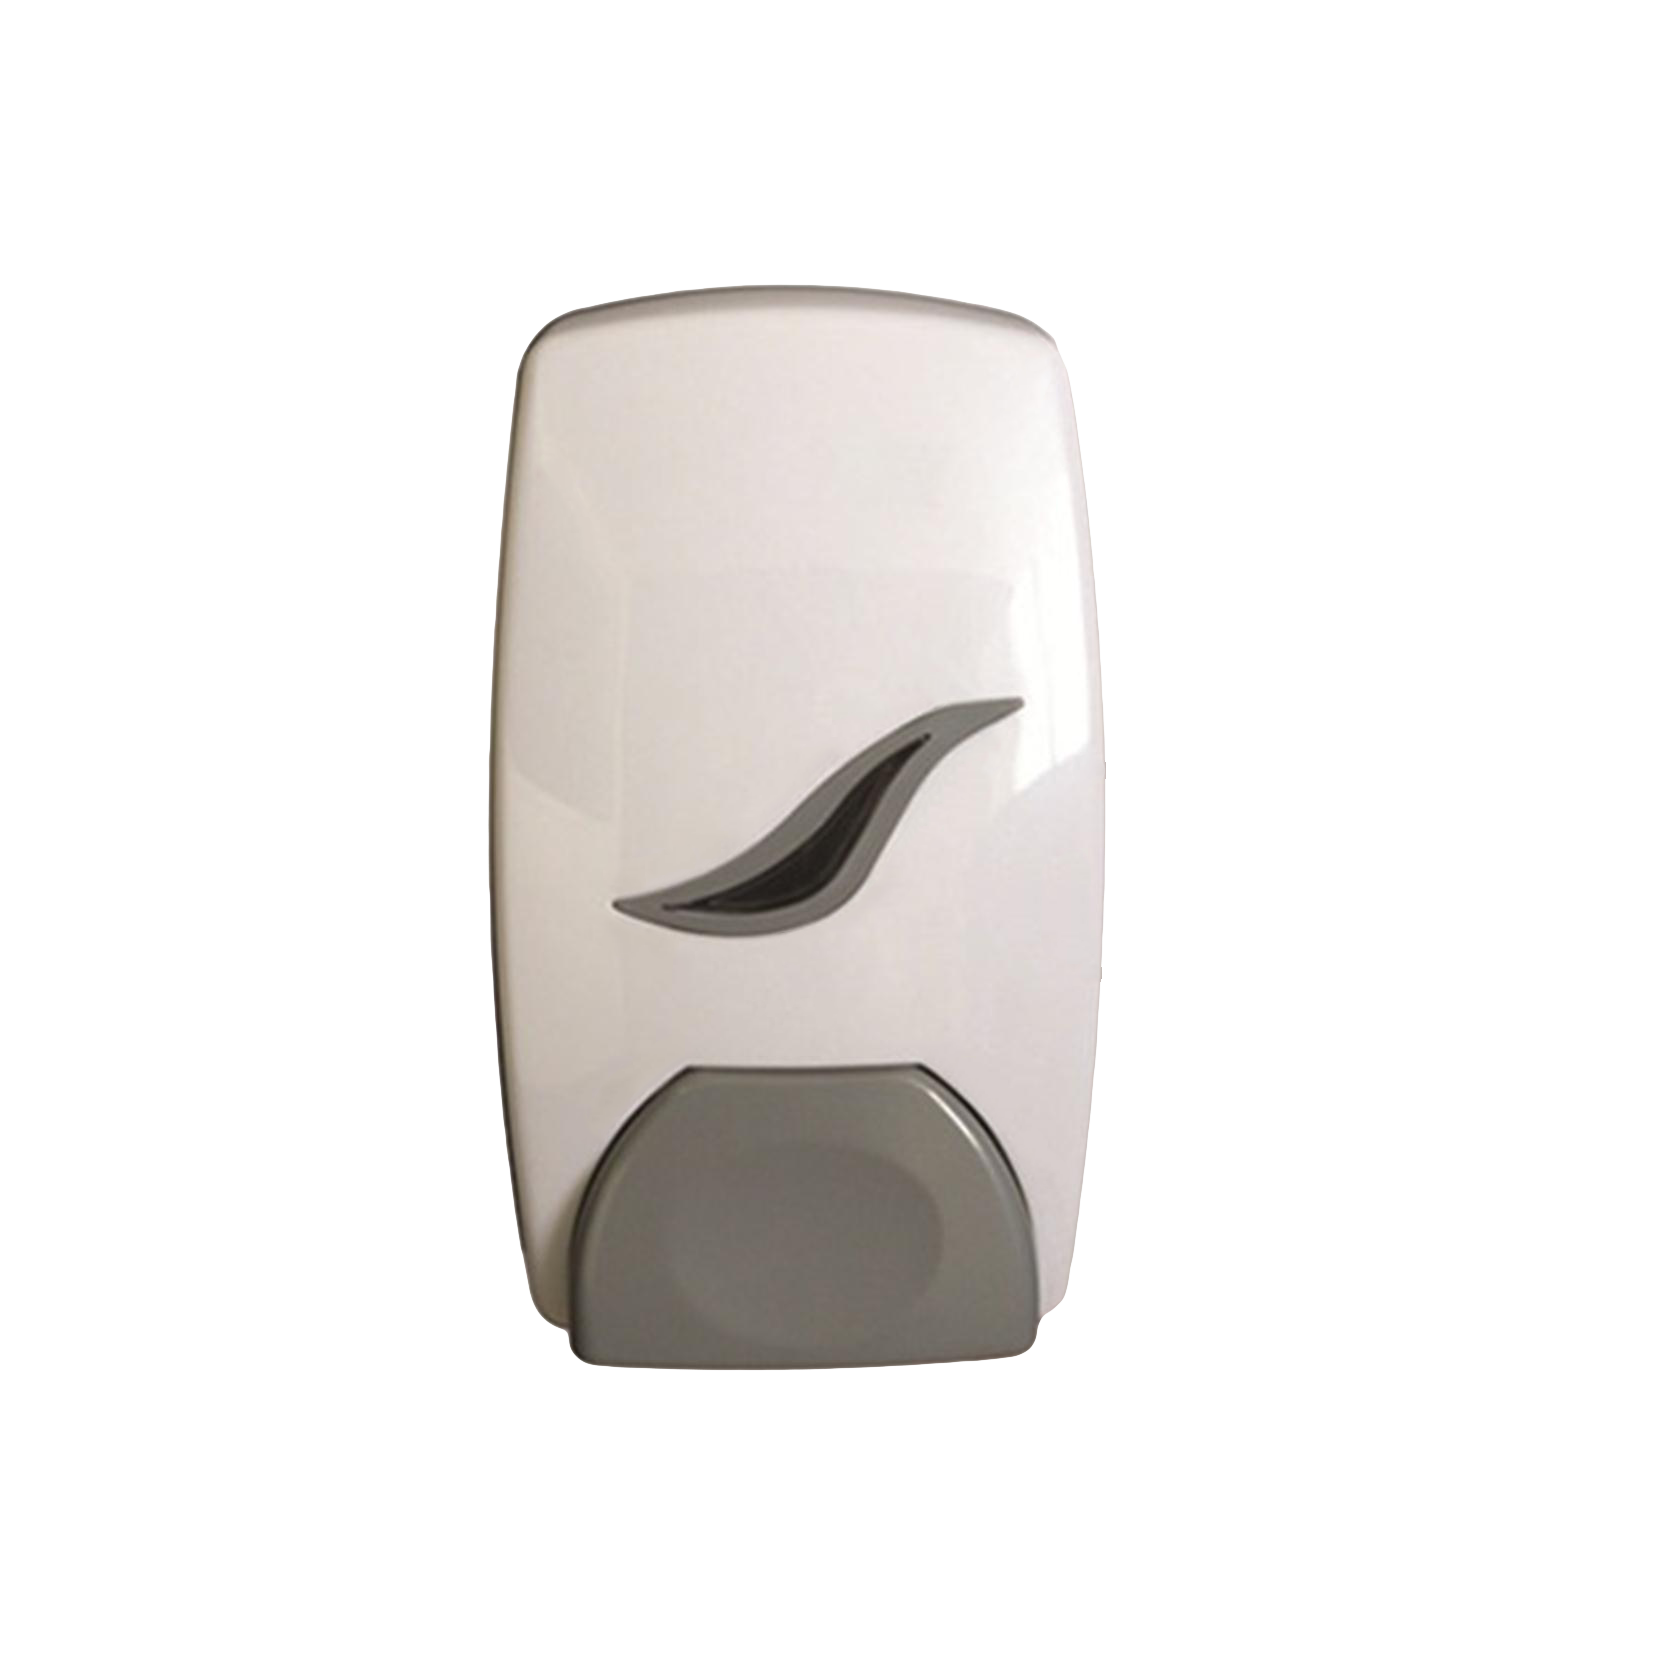 Hectoserve Plastic hand soap dispenser